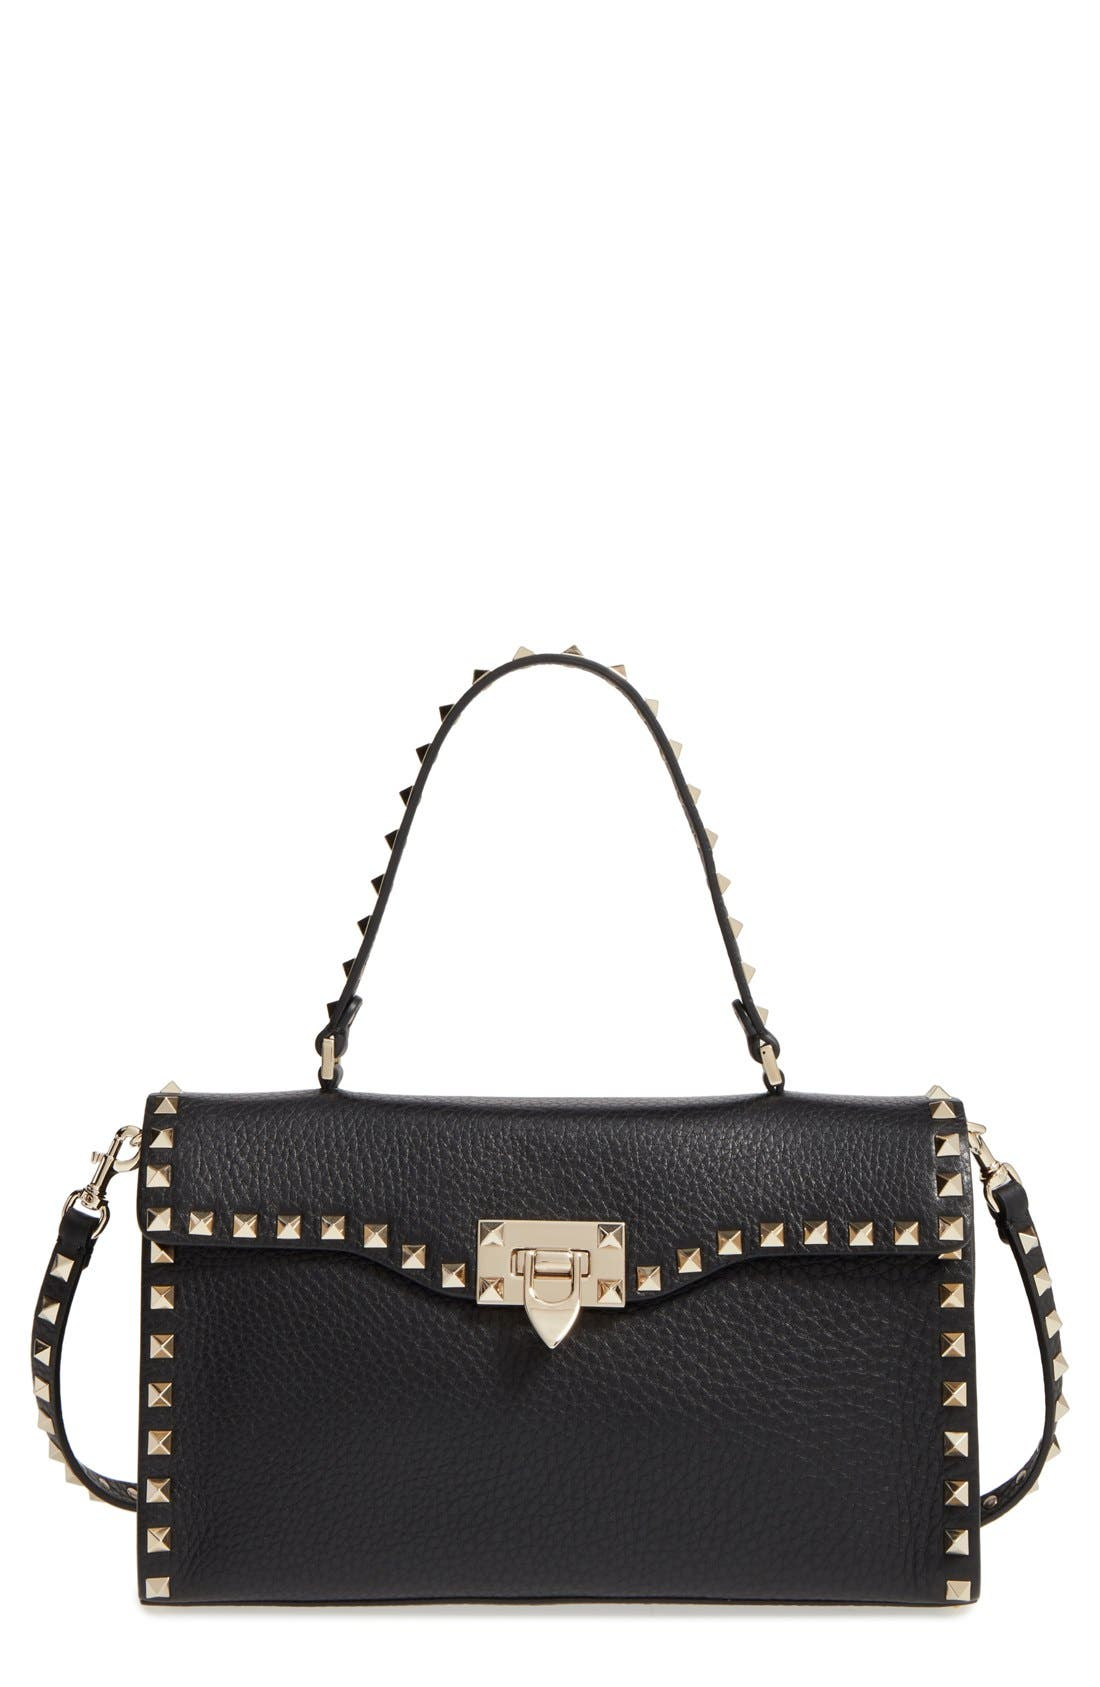 Valentino 'Rockstud' Calfskin Leather Single Handle Shoulder Bag